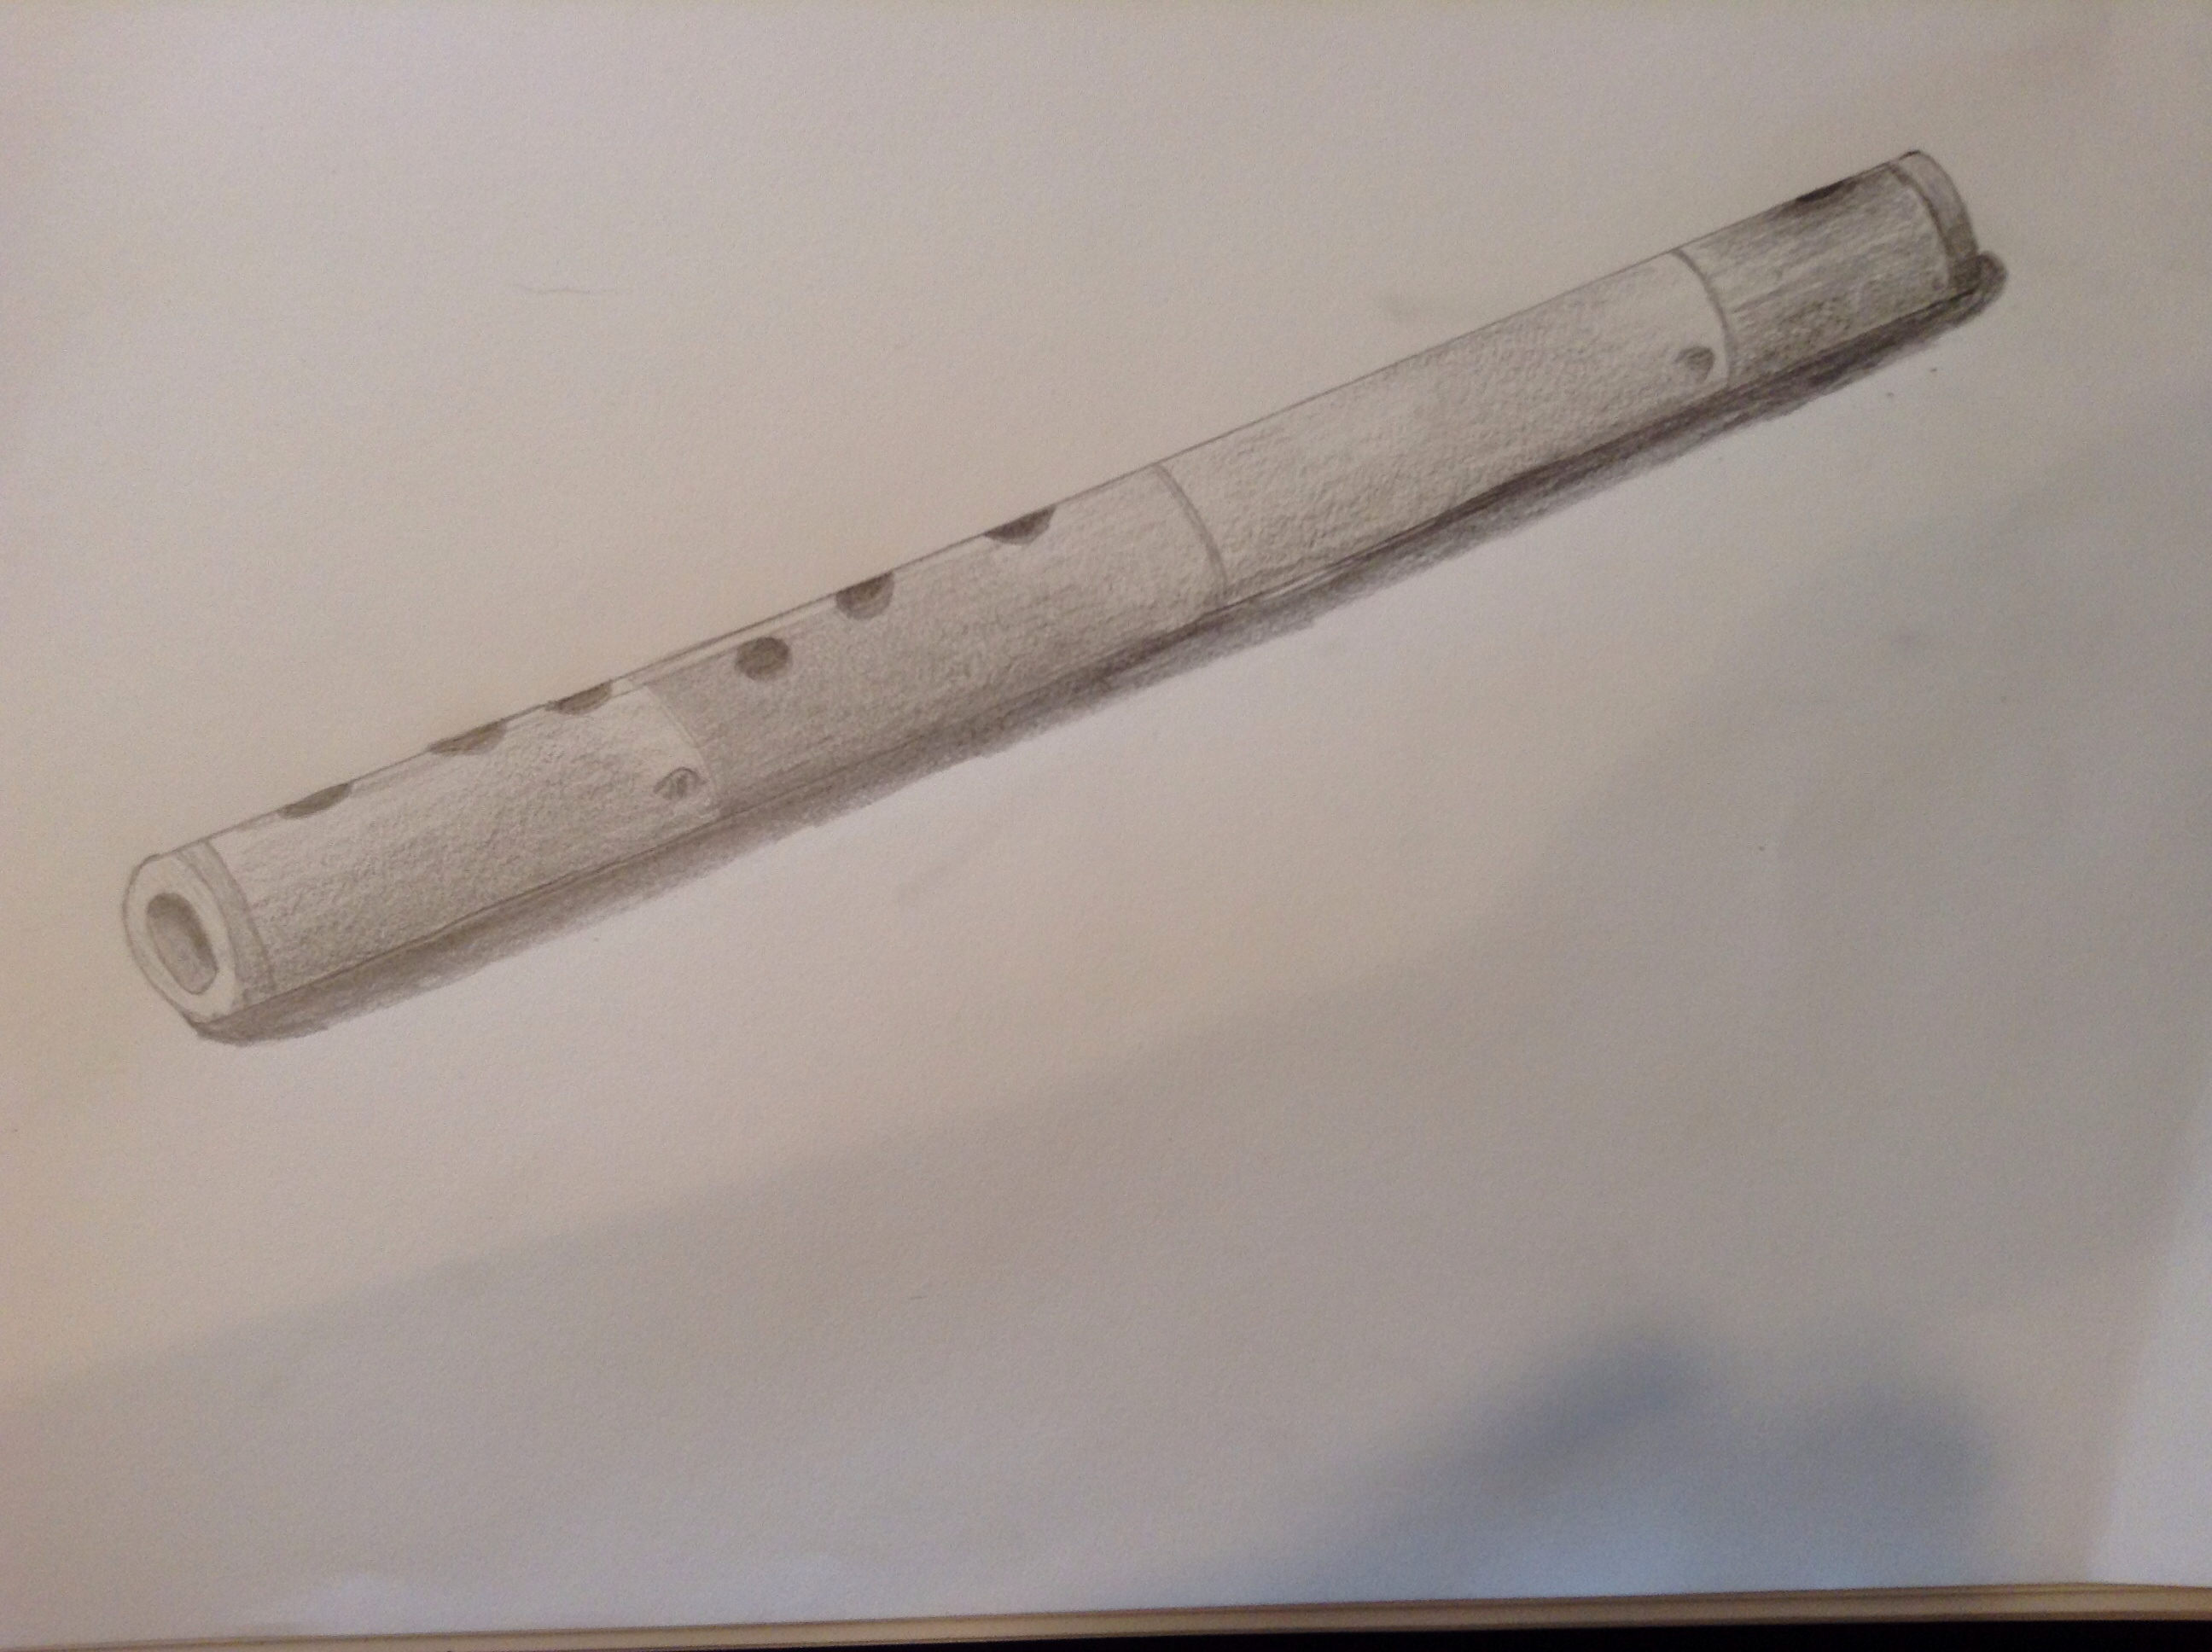 2592x1936 Bamboo Flute Drawing The Yuletide Bride Flute